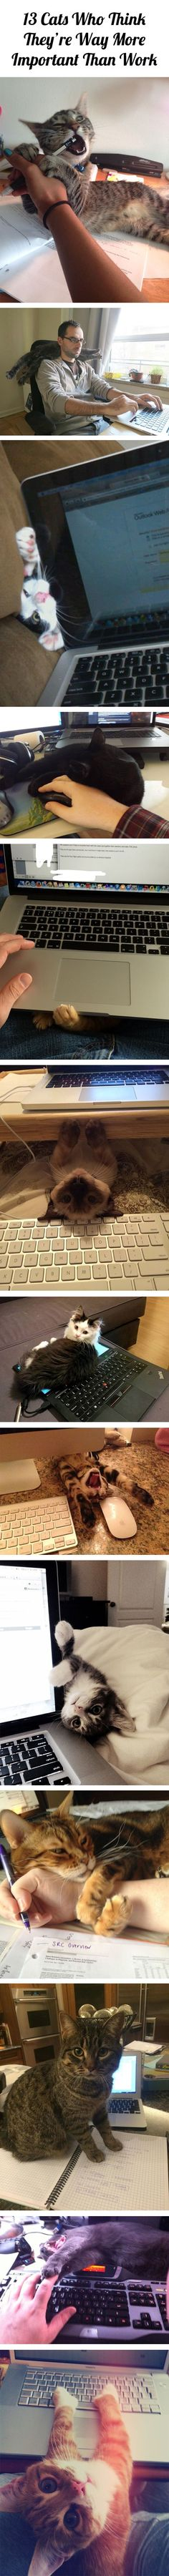 13 cats who think they're way more important than work - Tap the link now to see all of our cool cat collections!